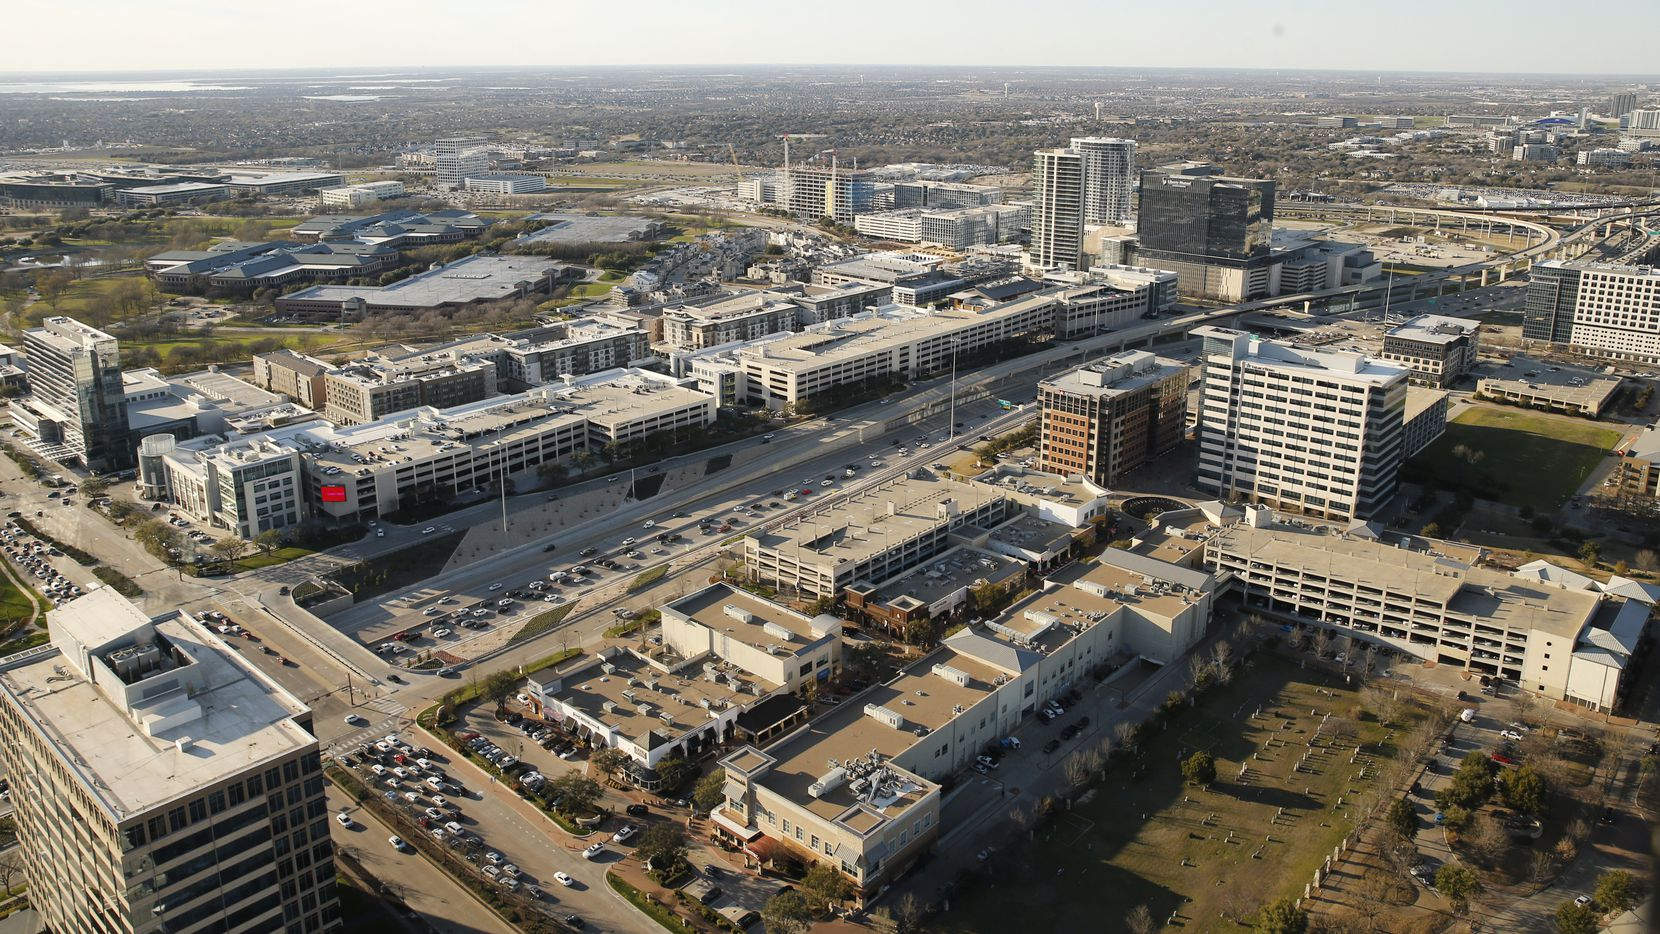 The $3 billion Legacy West project has been open since 2014.